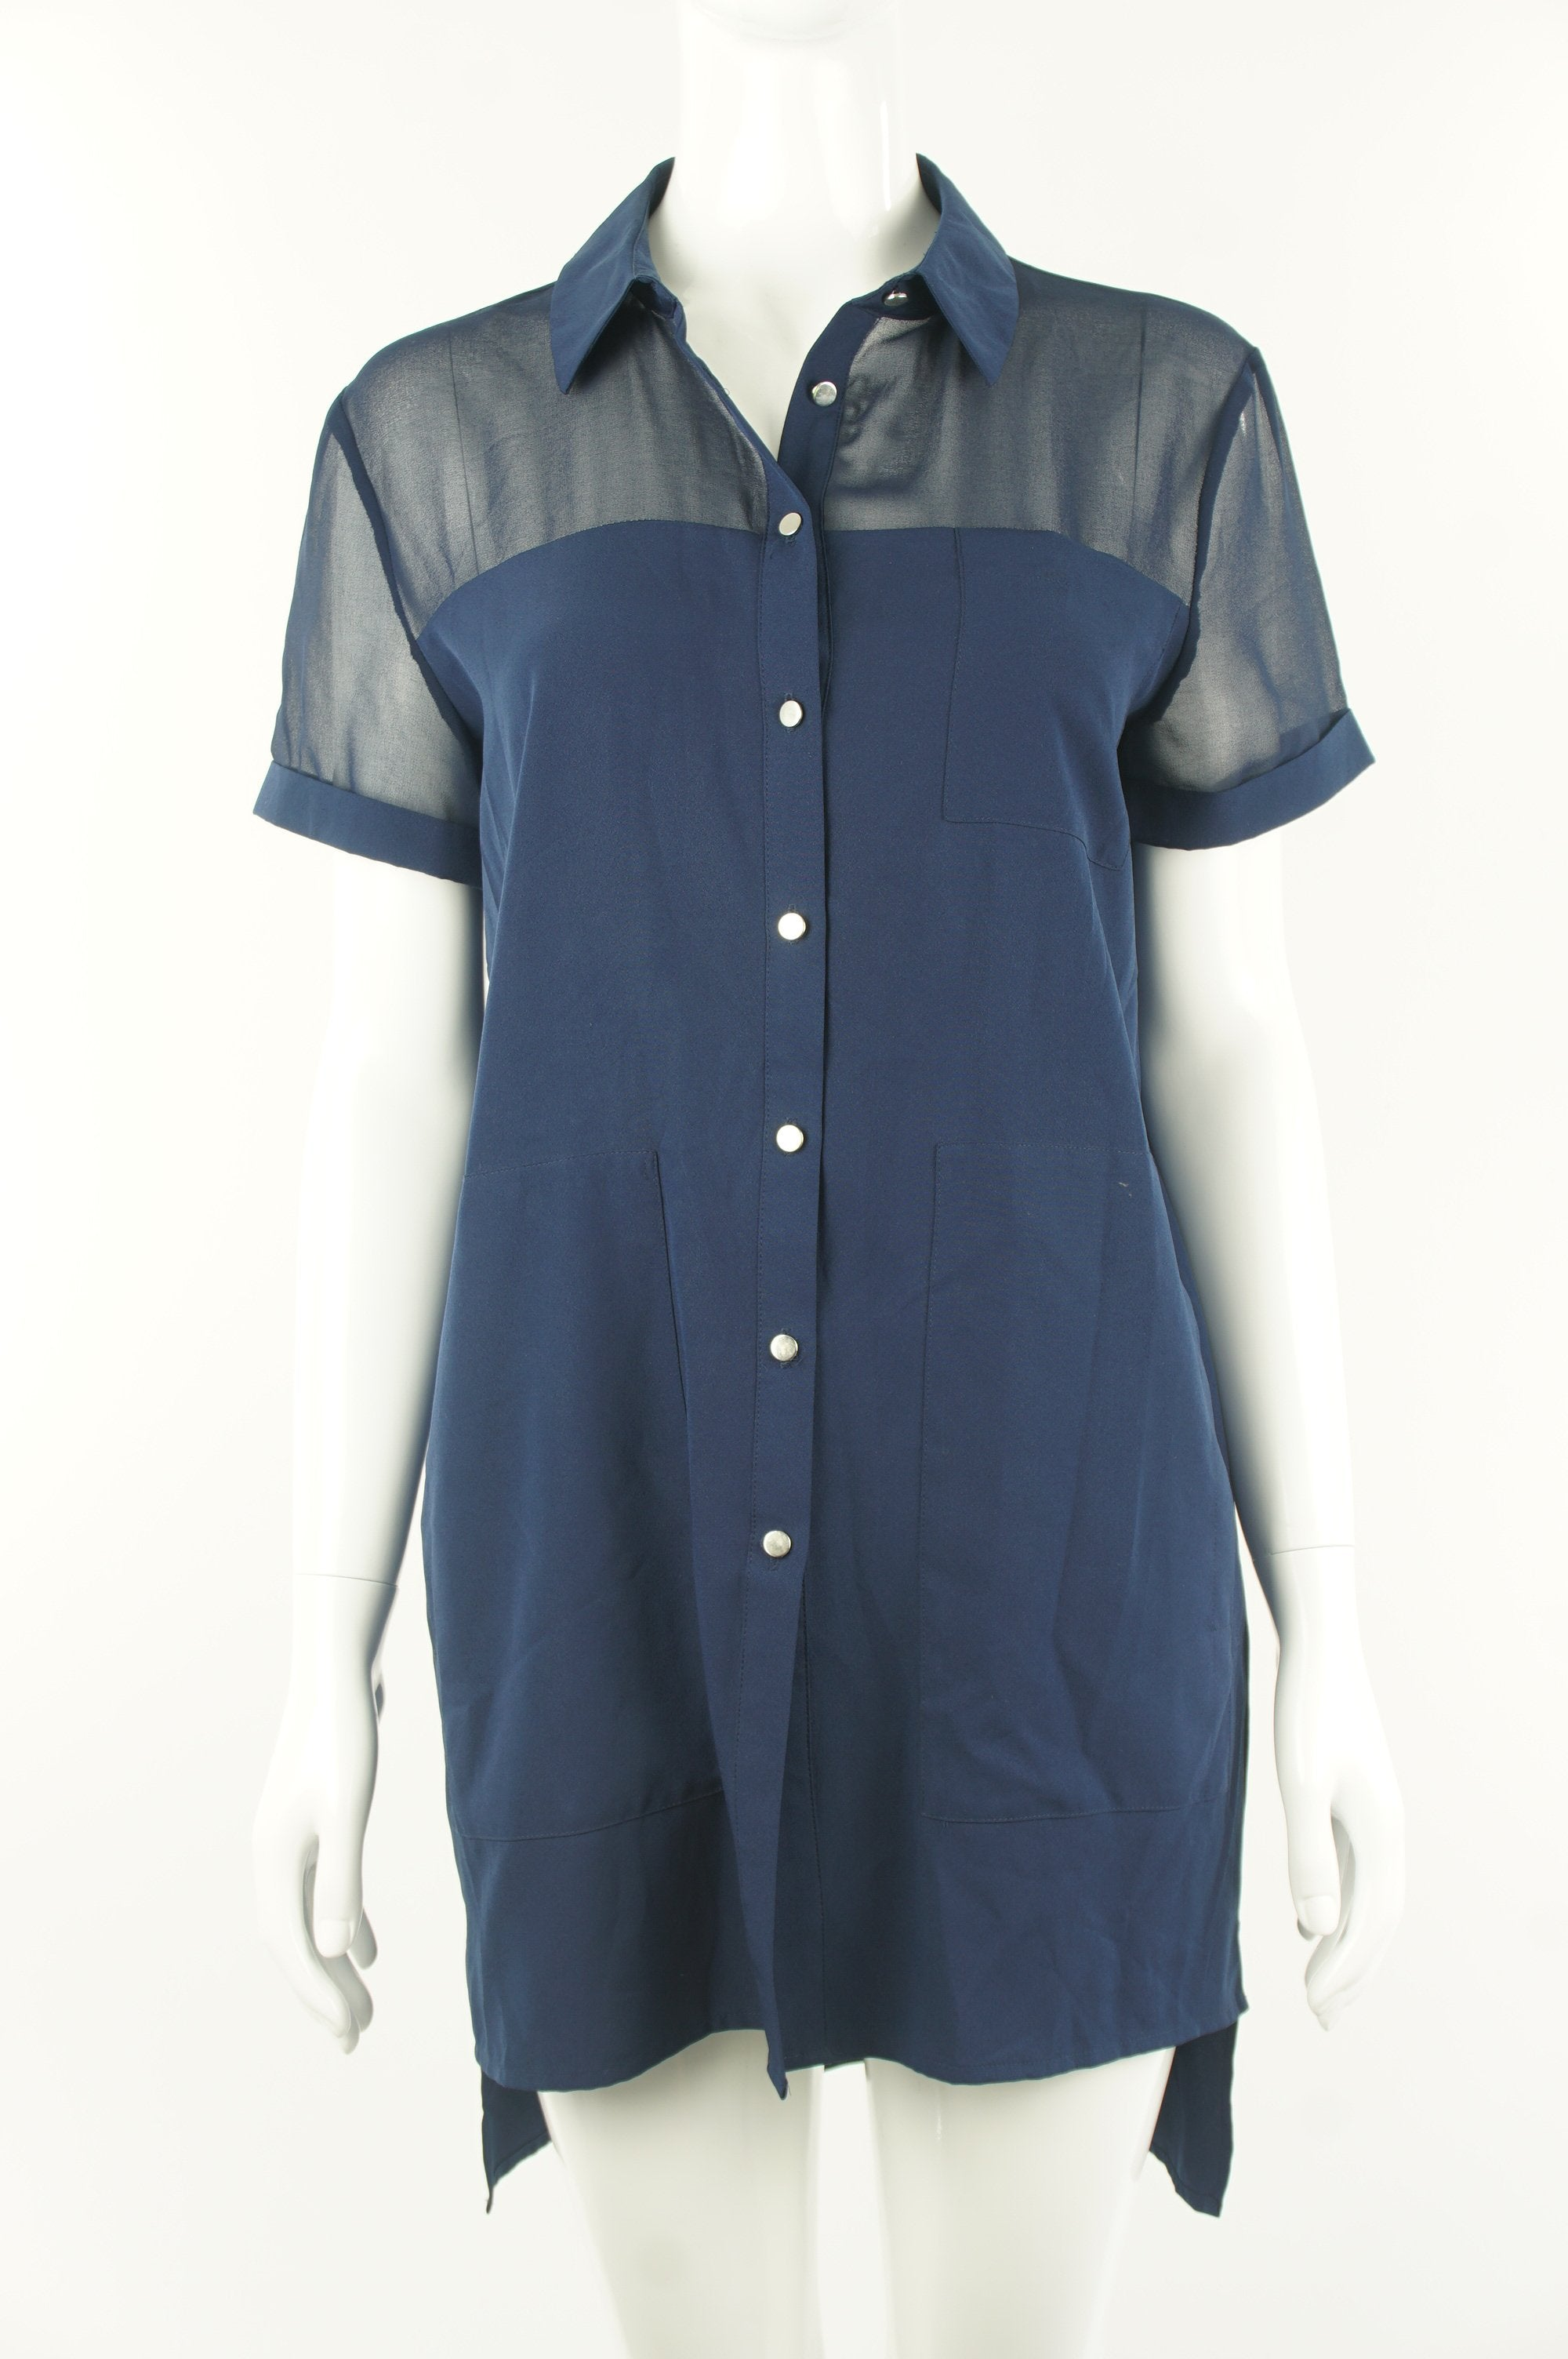 Ever New Dark Blue Button Up Long Shirt with Pockets, Cute  button up long shirt, or shirt dress for the petite;) Sheer fabric on top adds a bit sexiness to the casual look., Blue, 100% polyester, women's Dresses & Rompers, Tops, women's Blue Dresses & Rompers, Tops, Ever New women's Dresses & Rompers, Tops, ever new button down shirt dress and see through shoulder, ever new women's blue long shirt, ever new women's stylish shirt